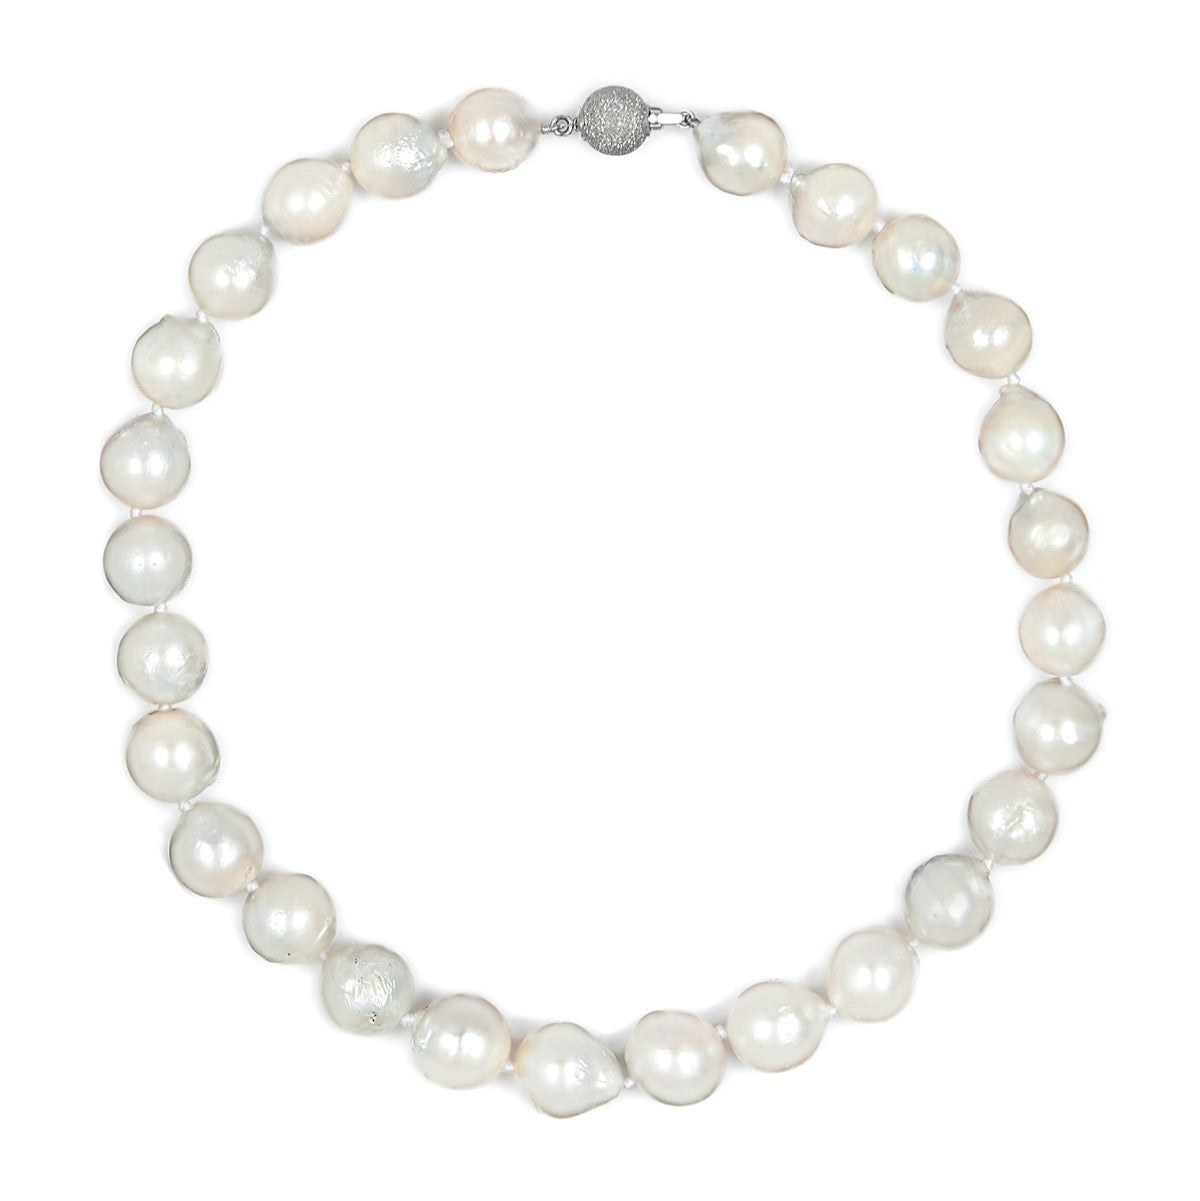 Baroque South Sea Pearl Single Strand Necklace